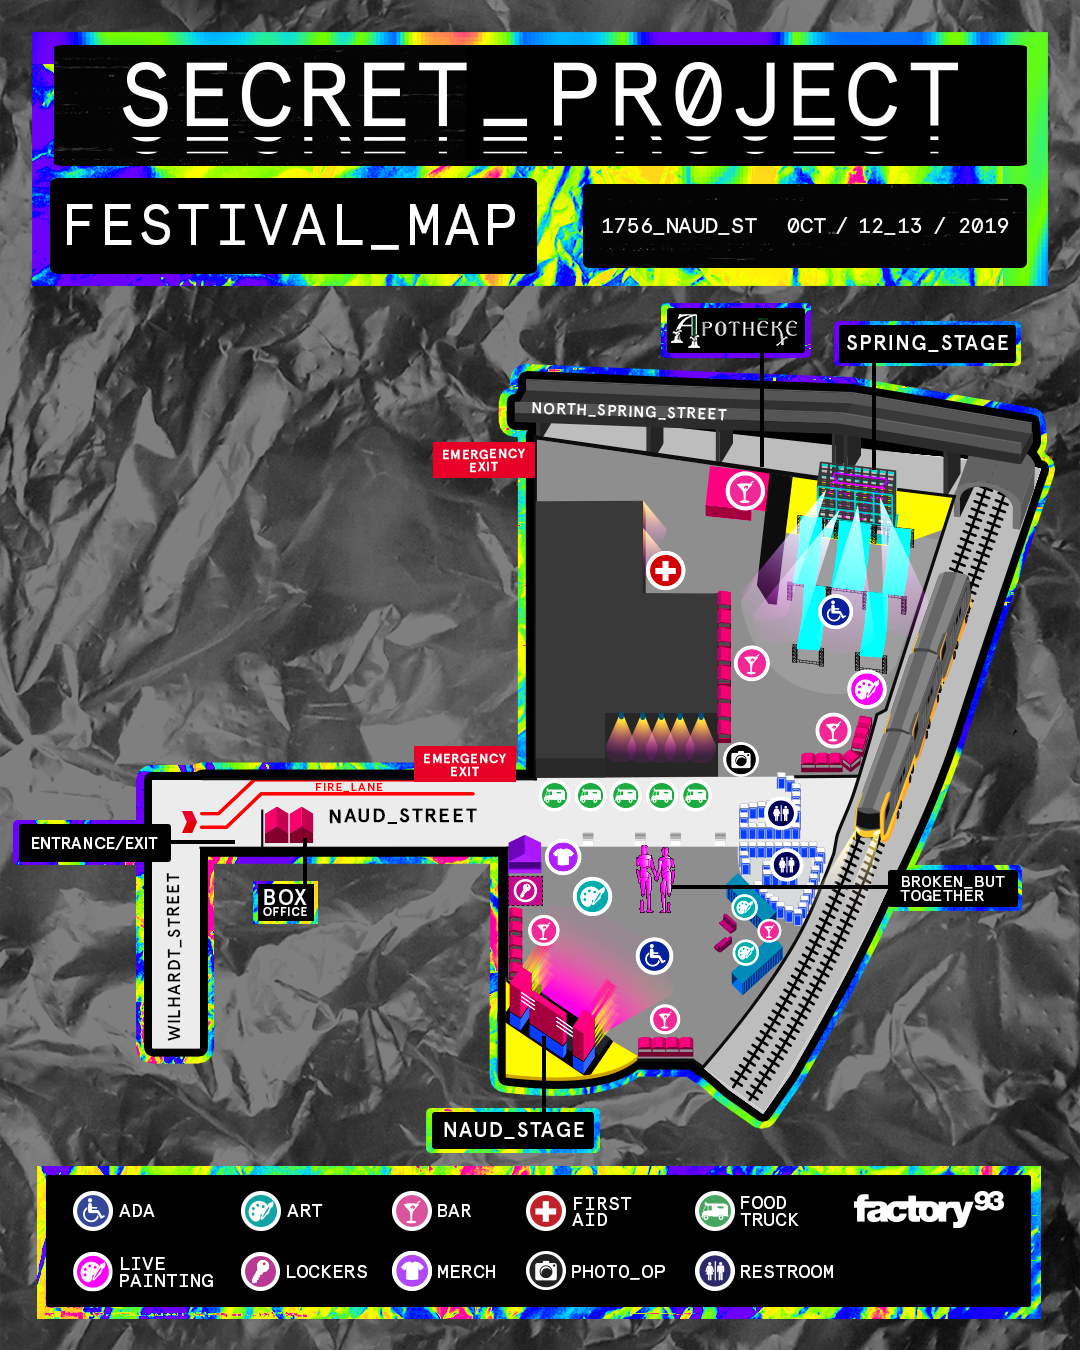 Secret Project festival map